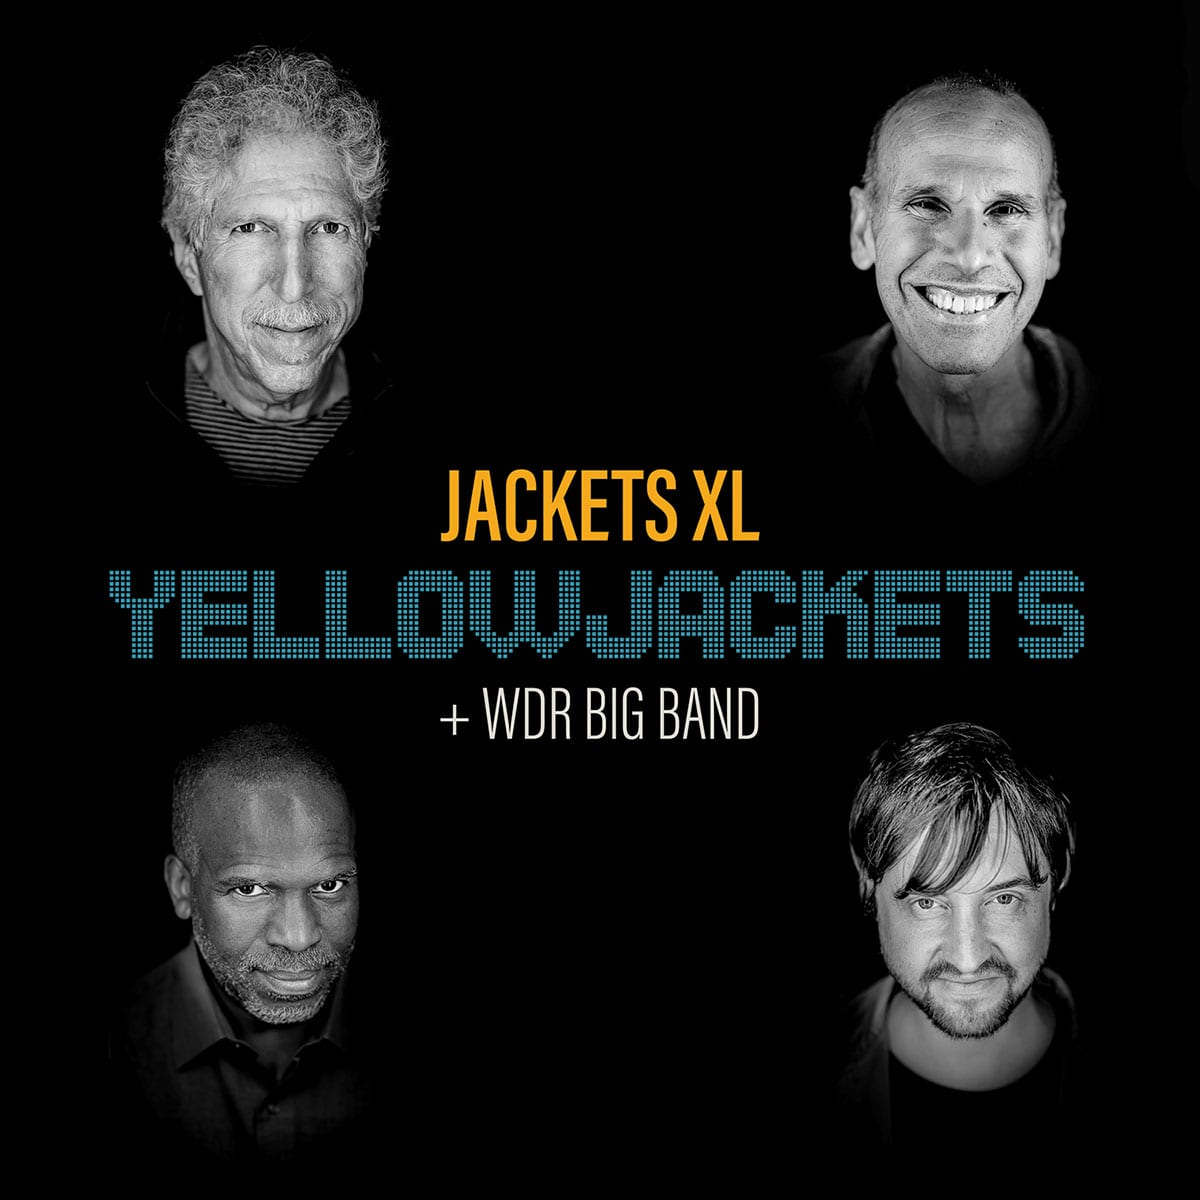 Yellowjackets + WDR Big Band: Jackets XL